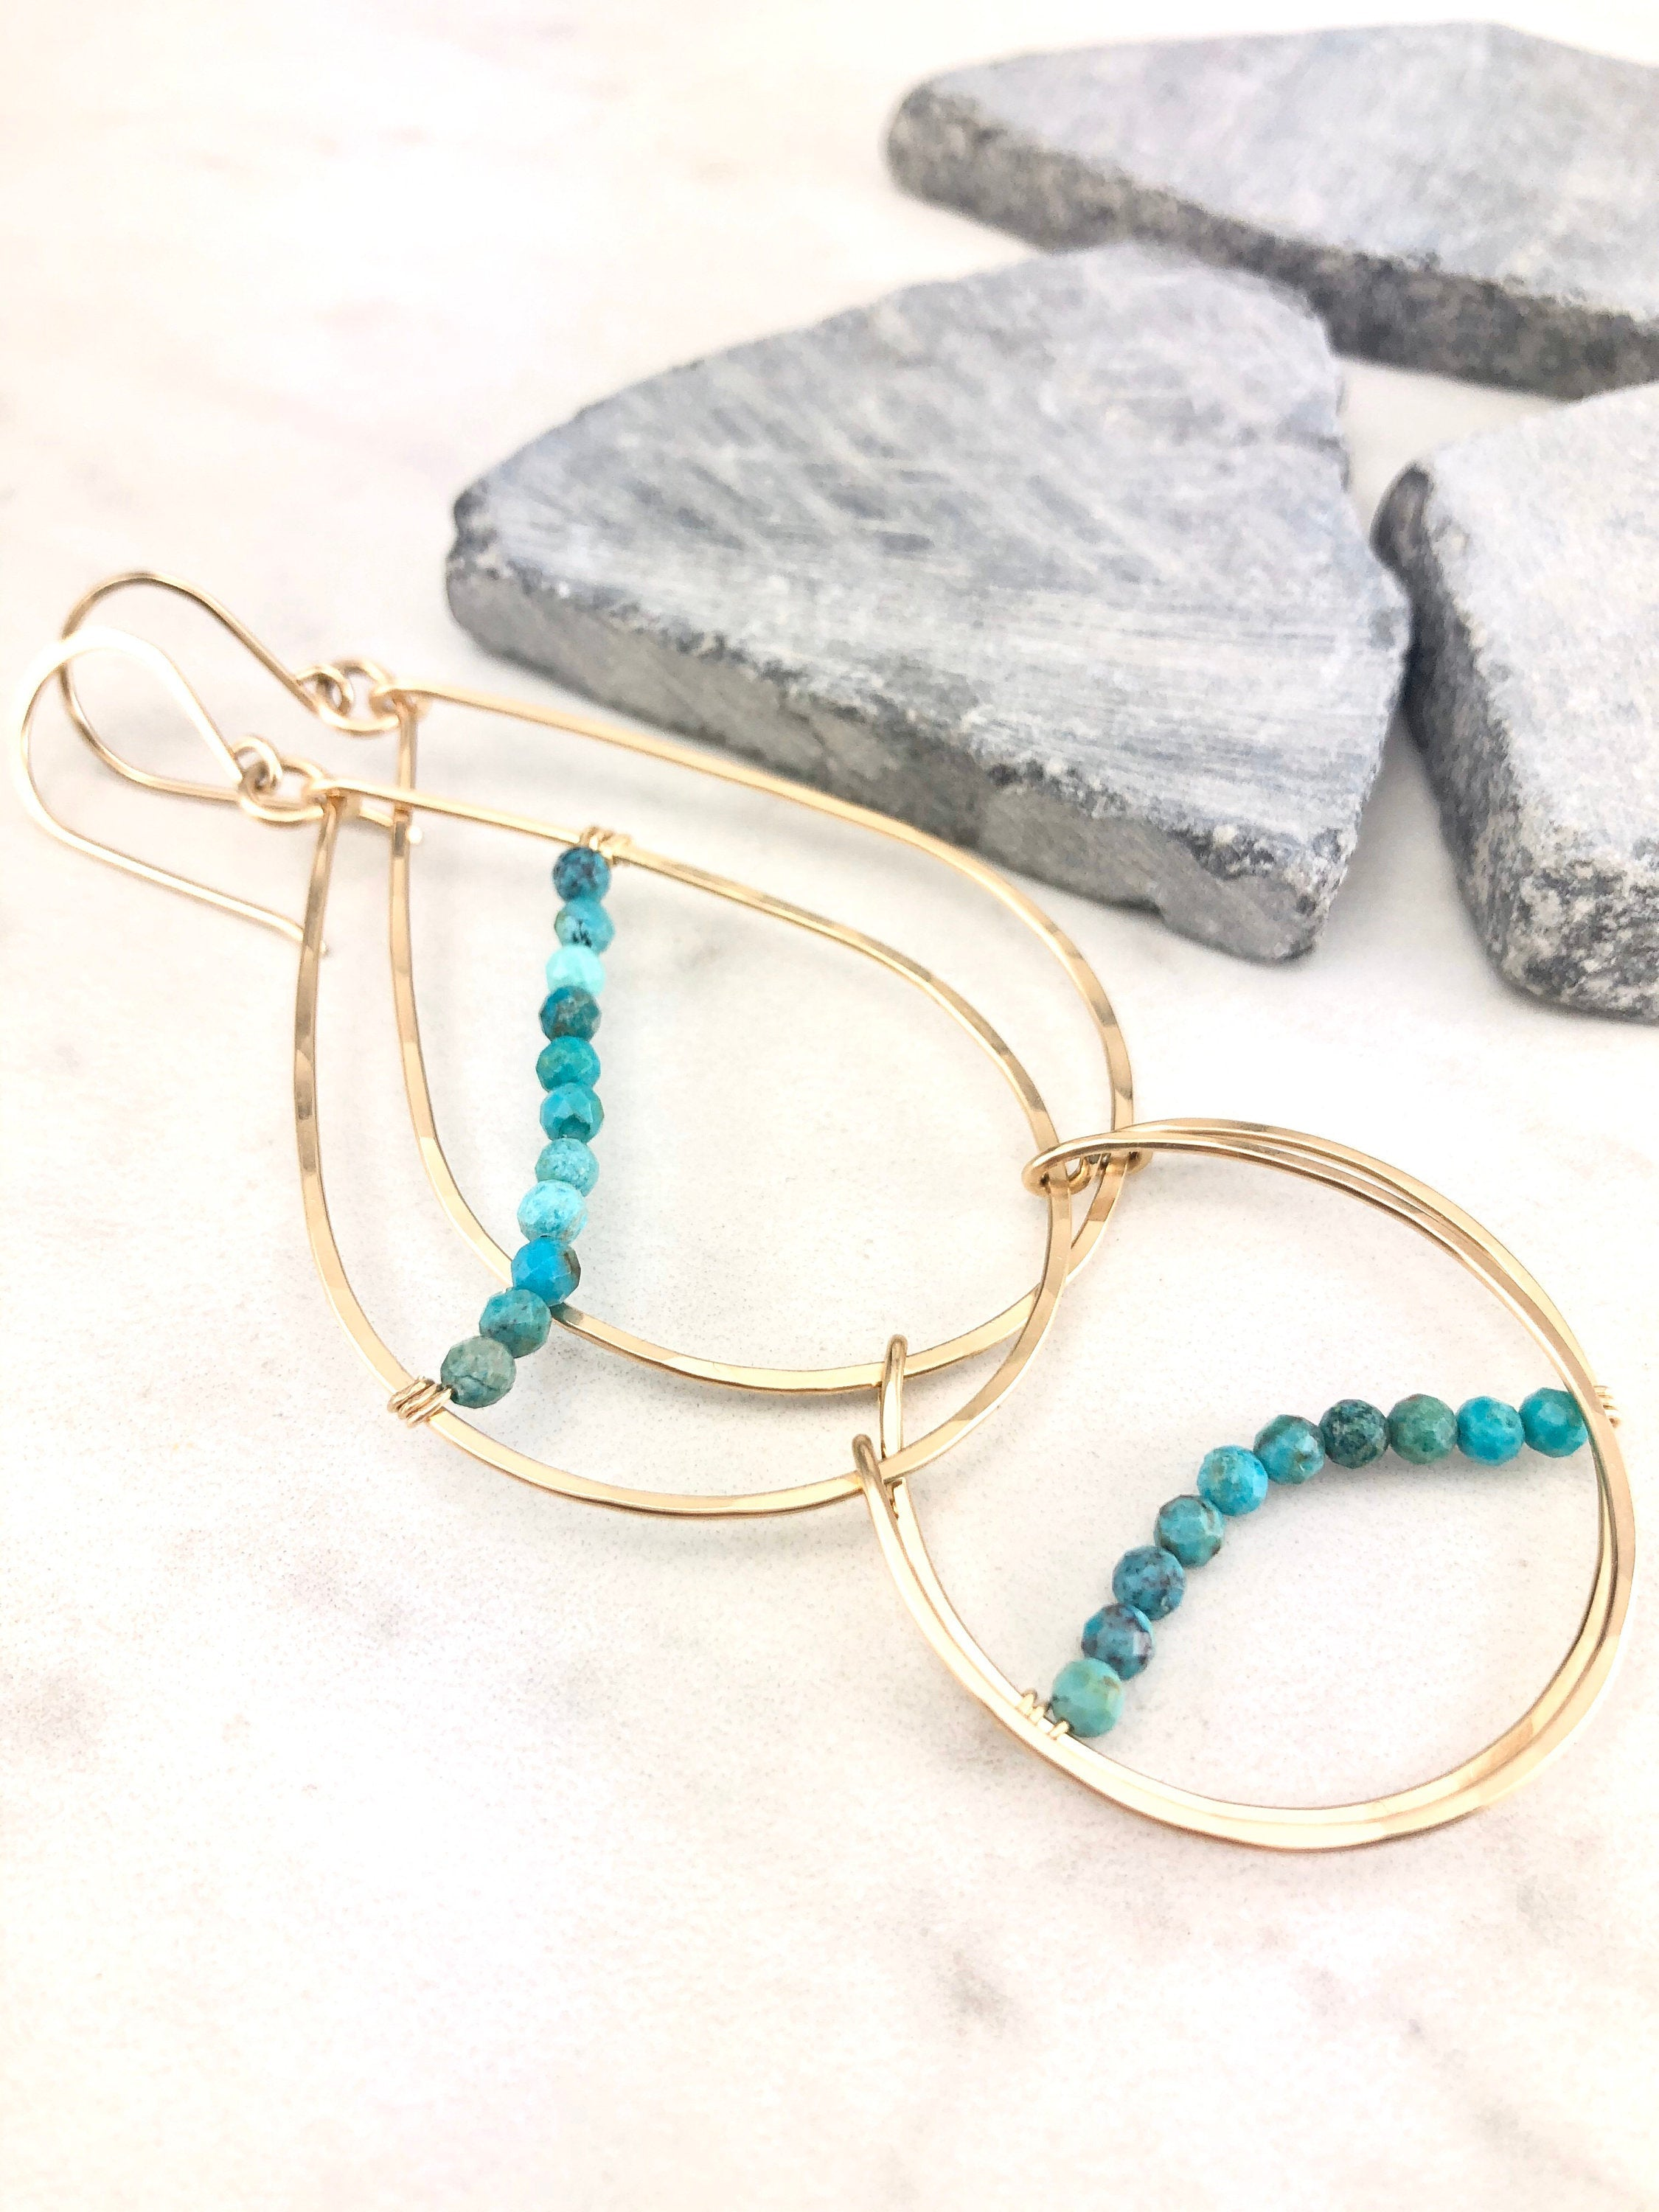 Gold and Turquoise Teardrop Statement Earrings